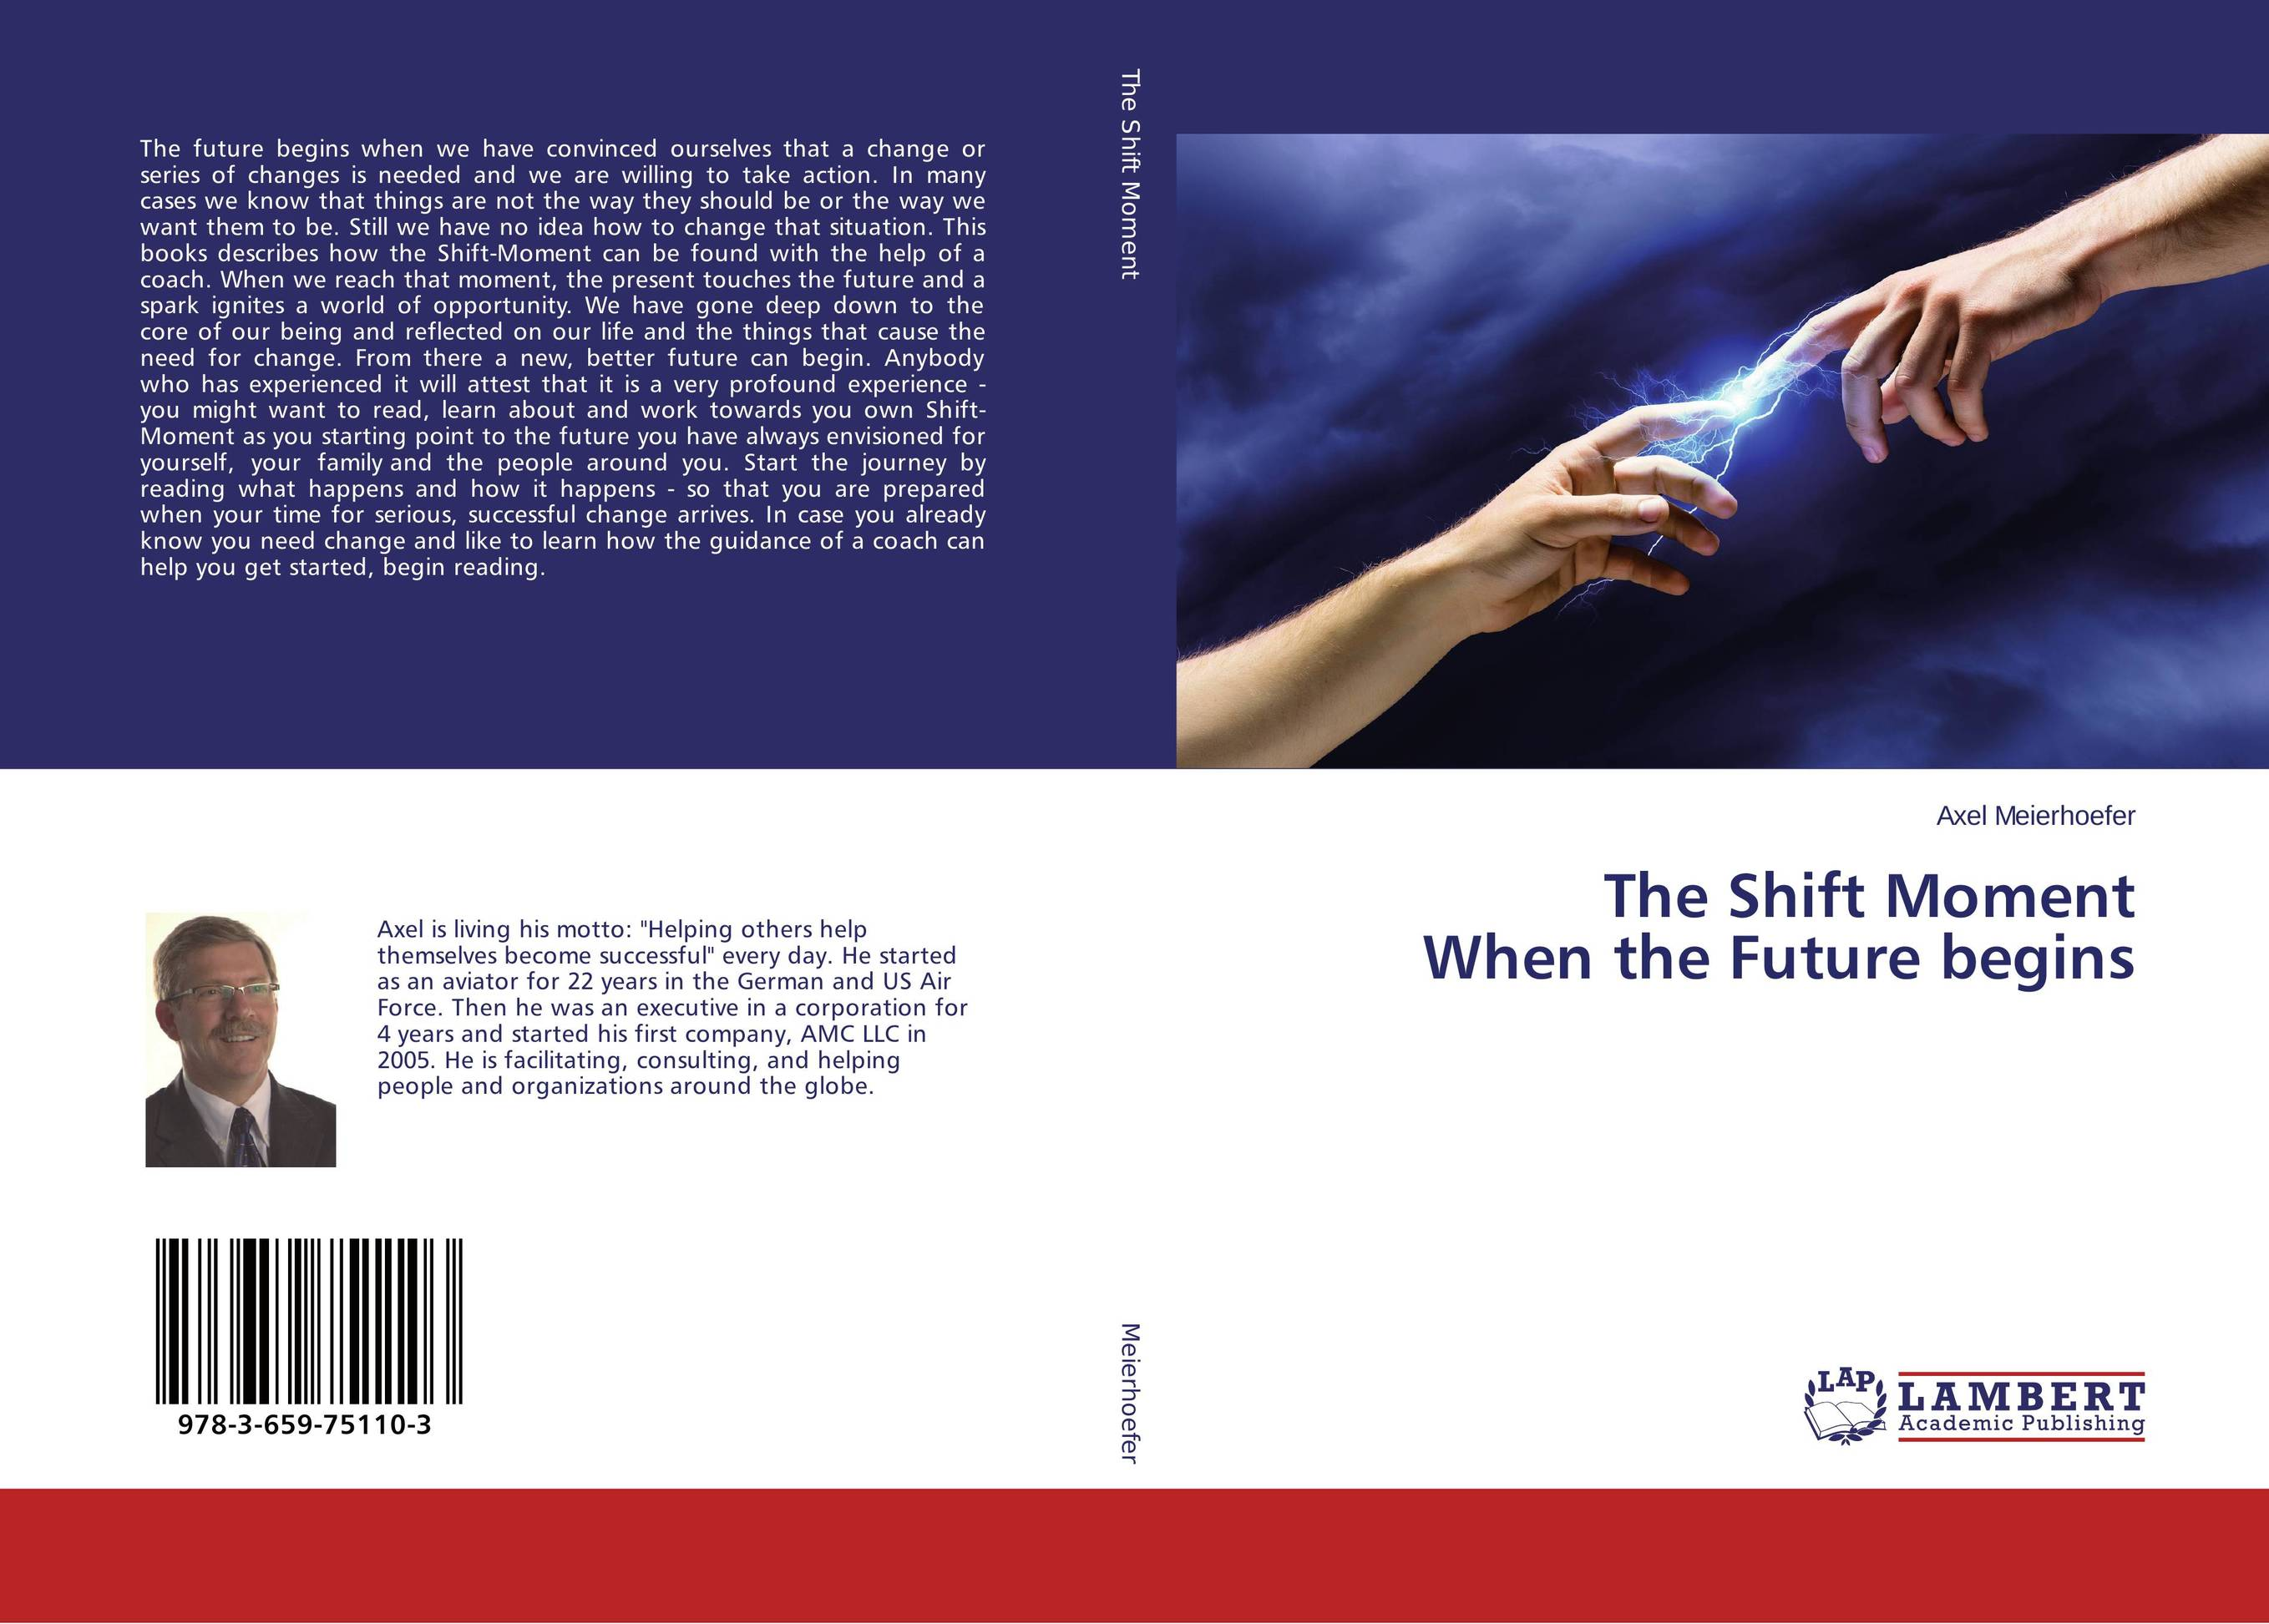 The Shift Moment When the Future begins